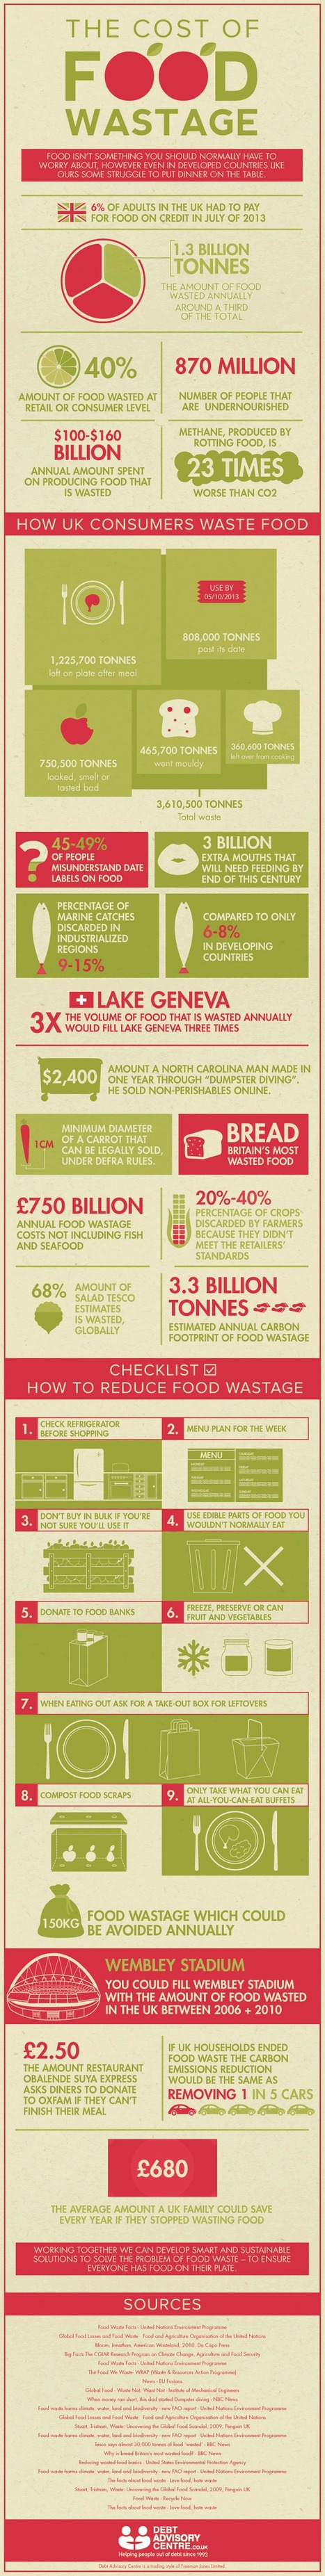 The Cost of Food Wastage (Infographic) | green infographics | Scoop.it